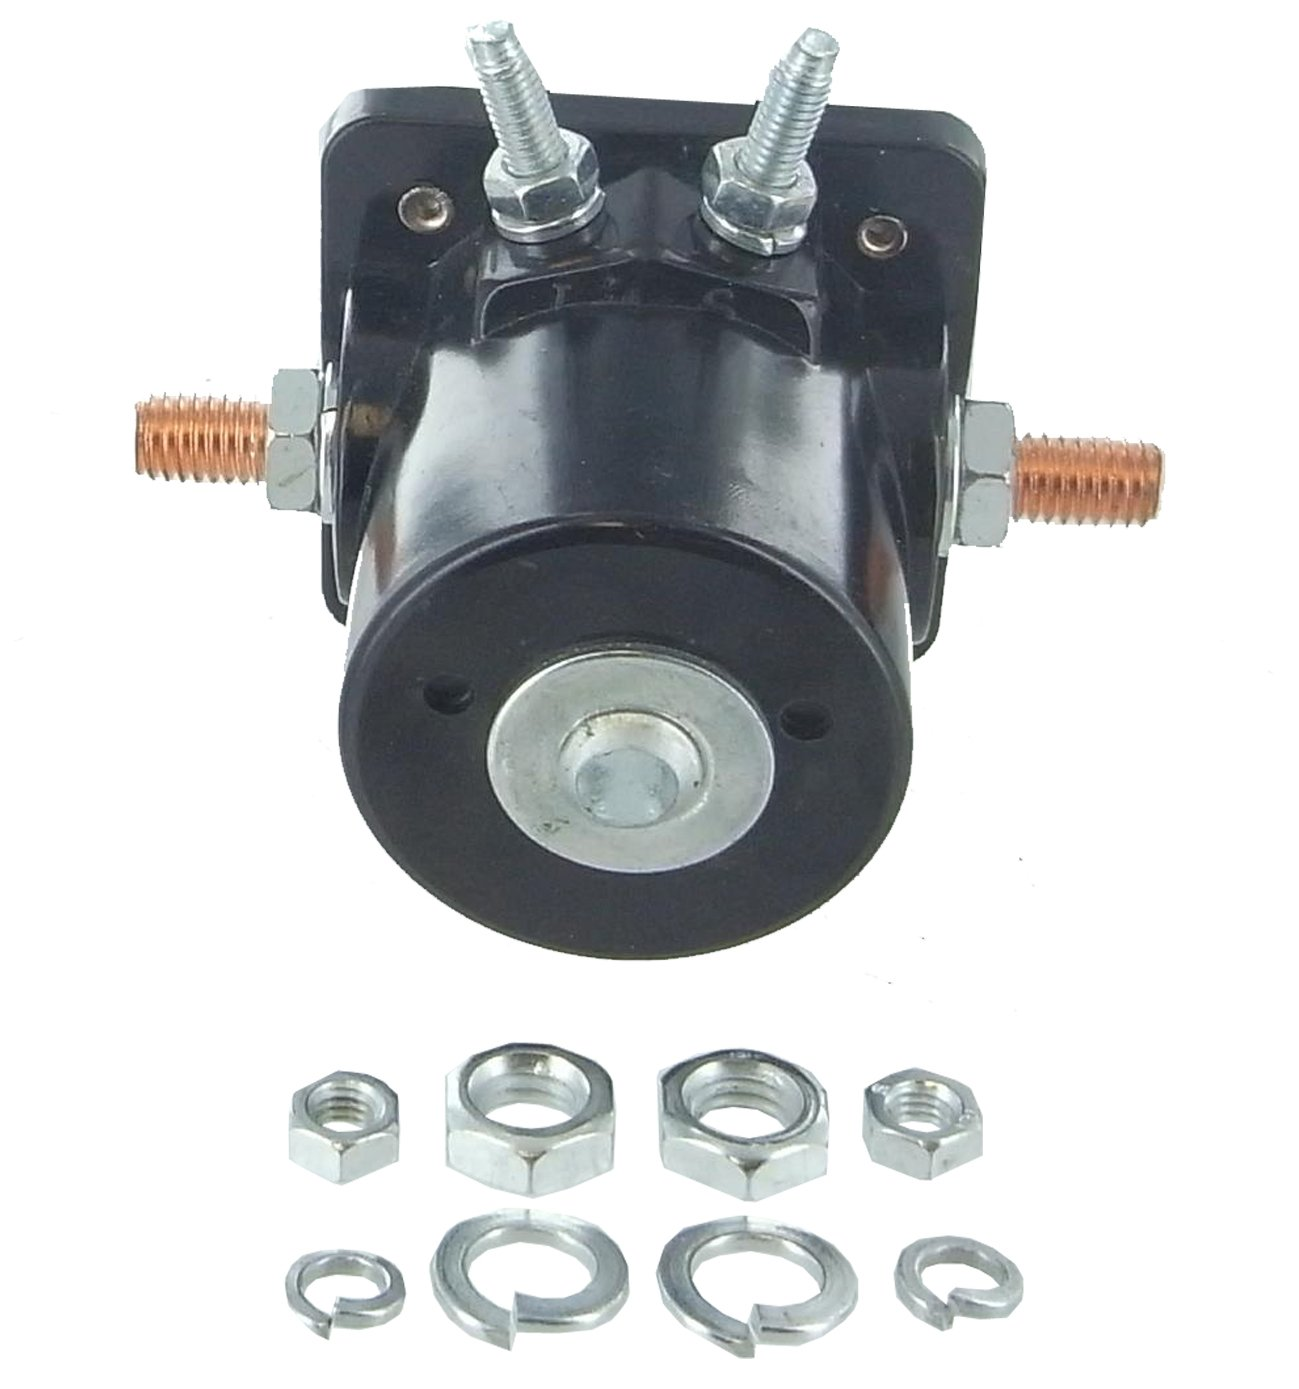 Amazon.com: Starter Solenoid Switch Johnson, OMC, Evinrude Outboard Motor:  Automotive